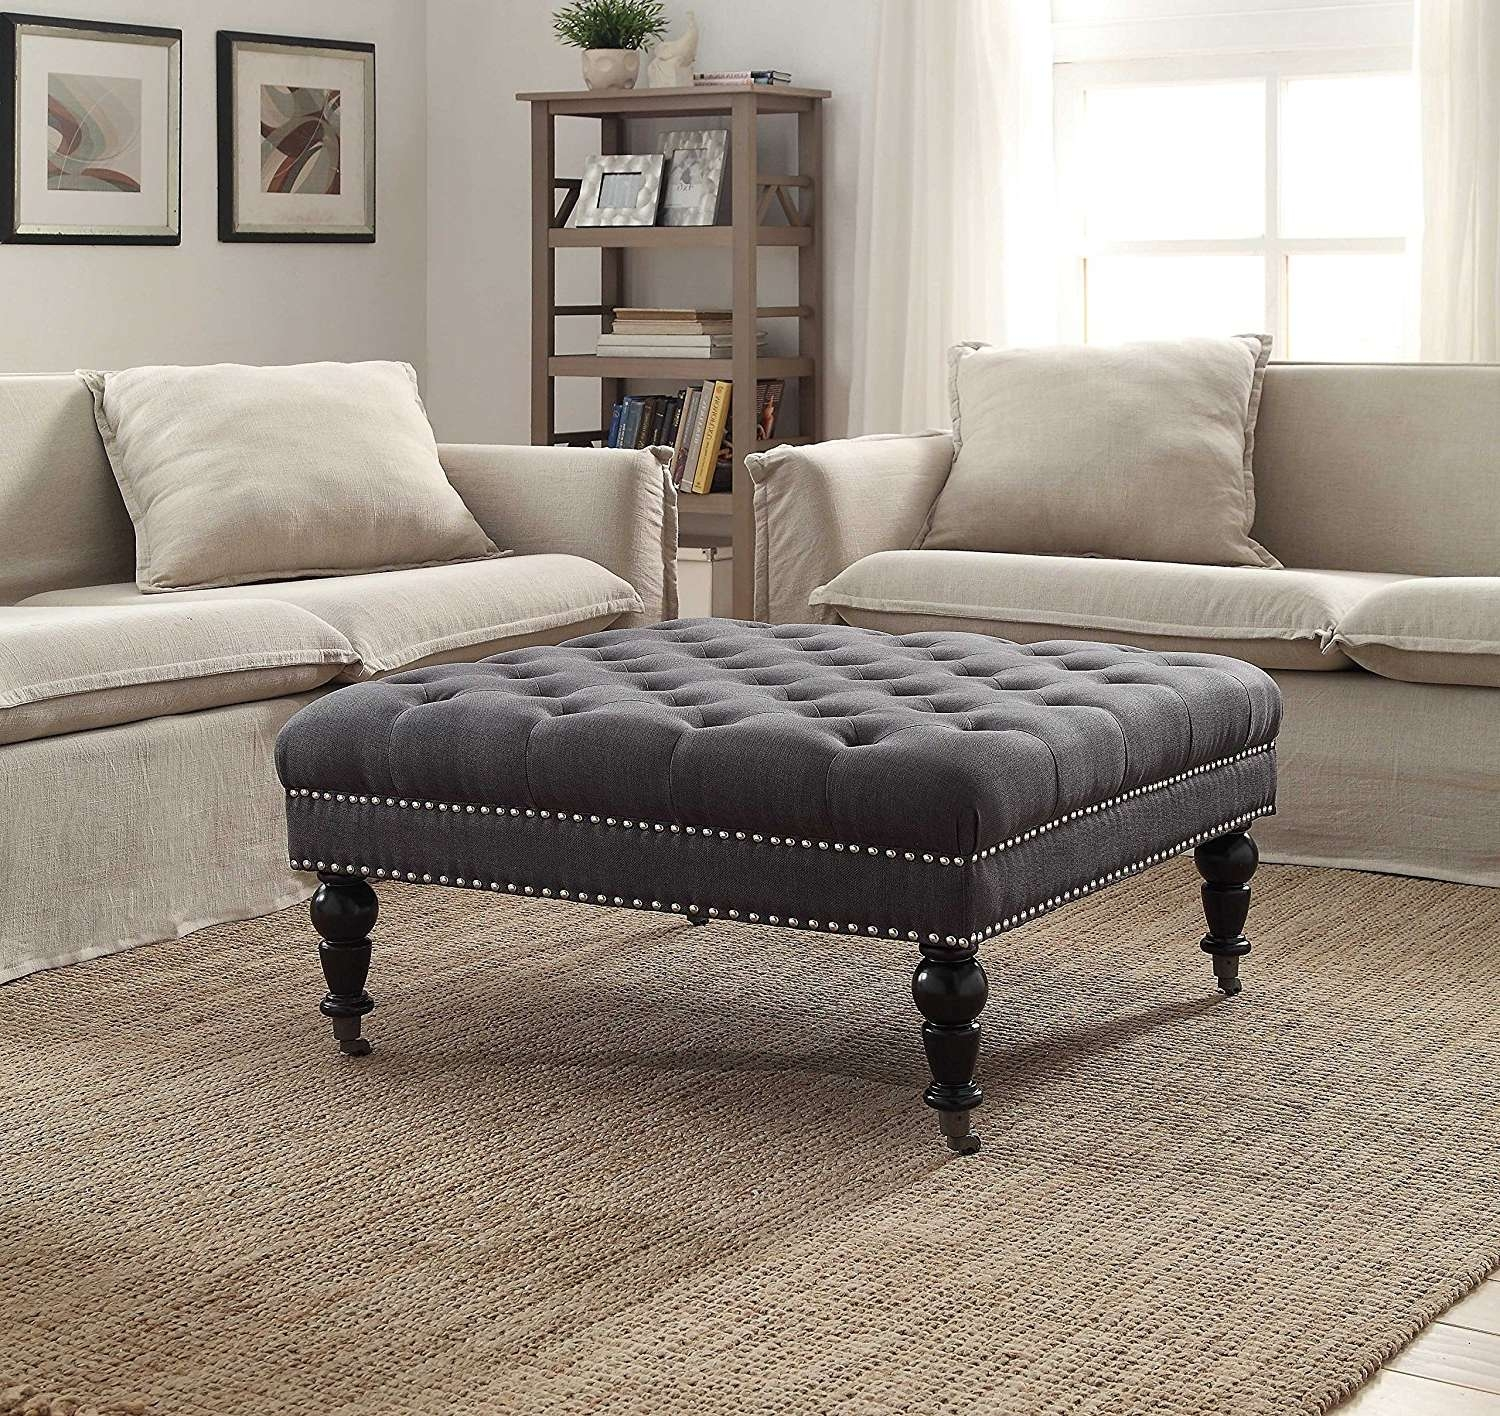 Well Known Fabric Coffee Tables Within Coffee Tables : Square Cocktail Ottoman Fabric Coffee Table Suede (View 12 of 20)